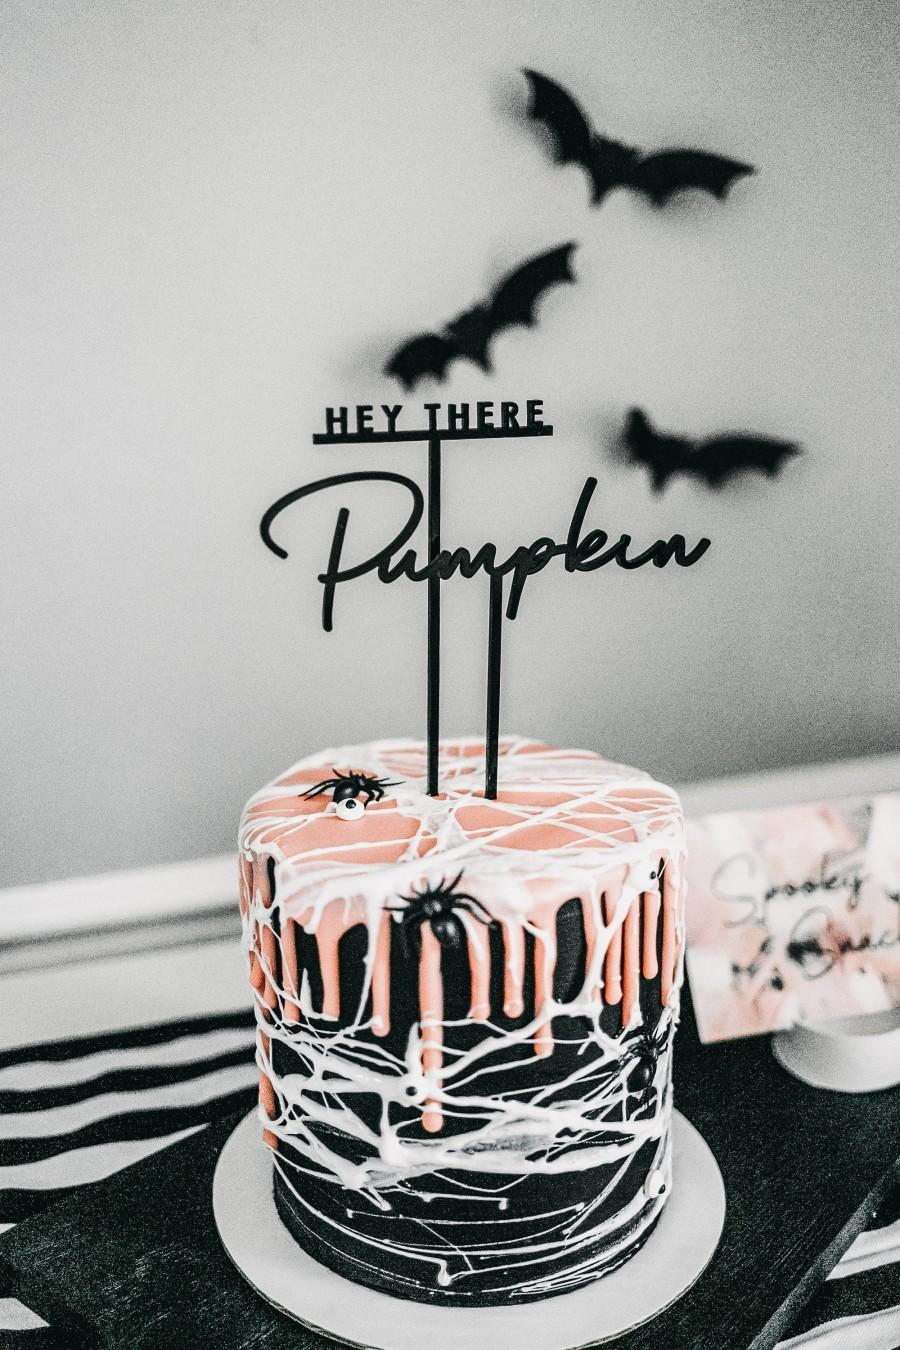 Wedding - hey there pumpkin cake topper // halloween cake topper // black acrylic cake topper